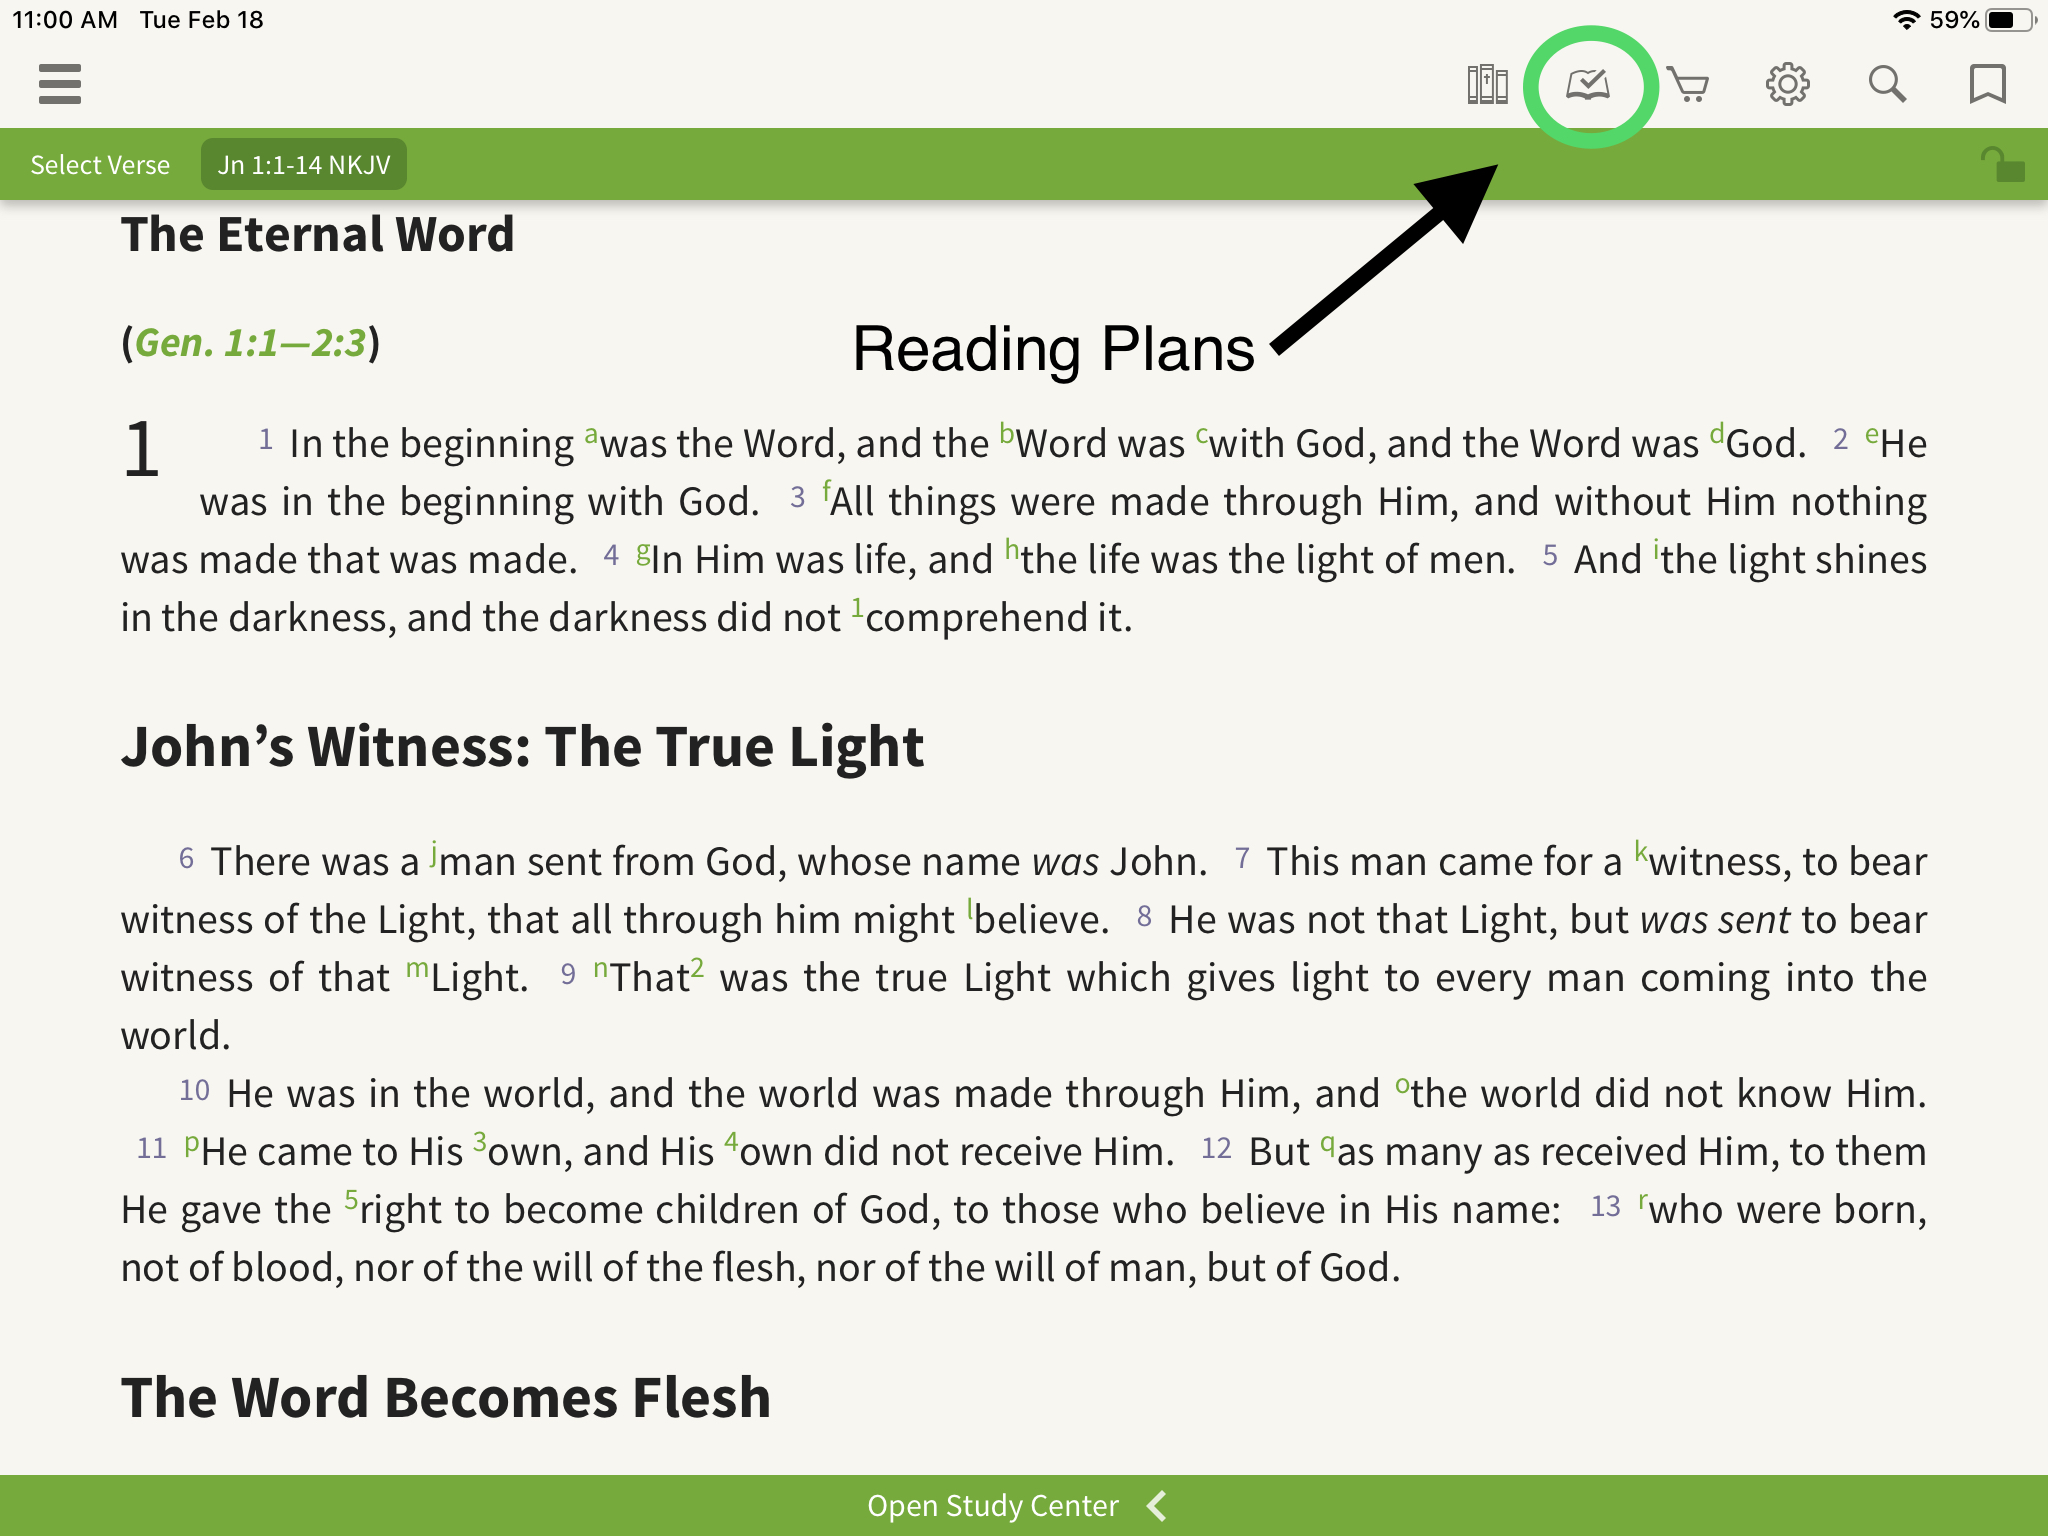 Olive Tree Bible App arrow pointing toward reading plan page